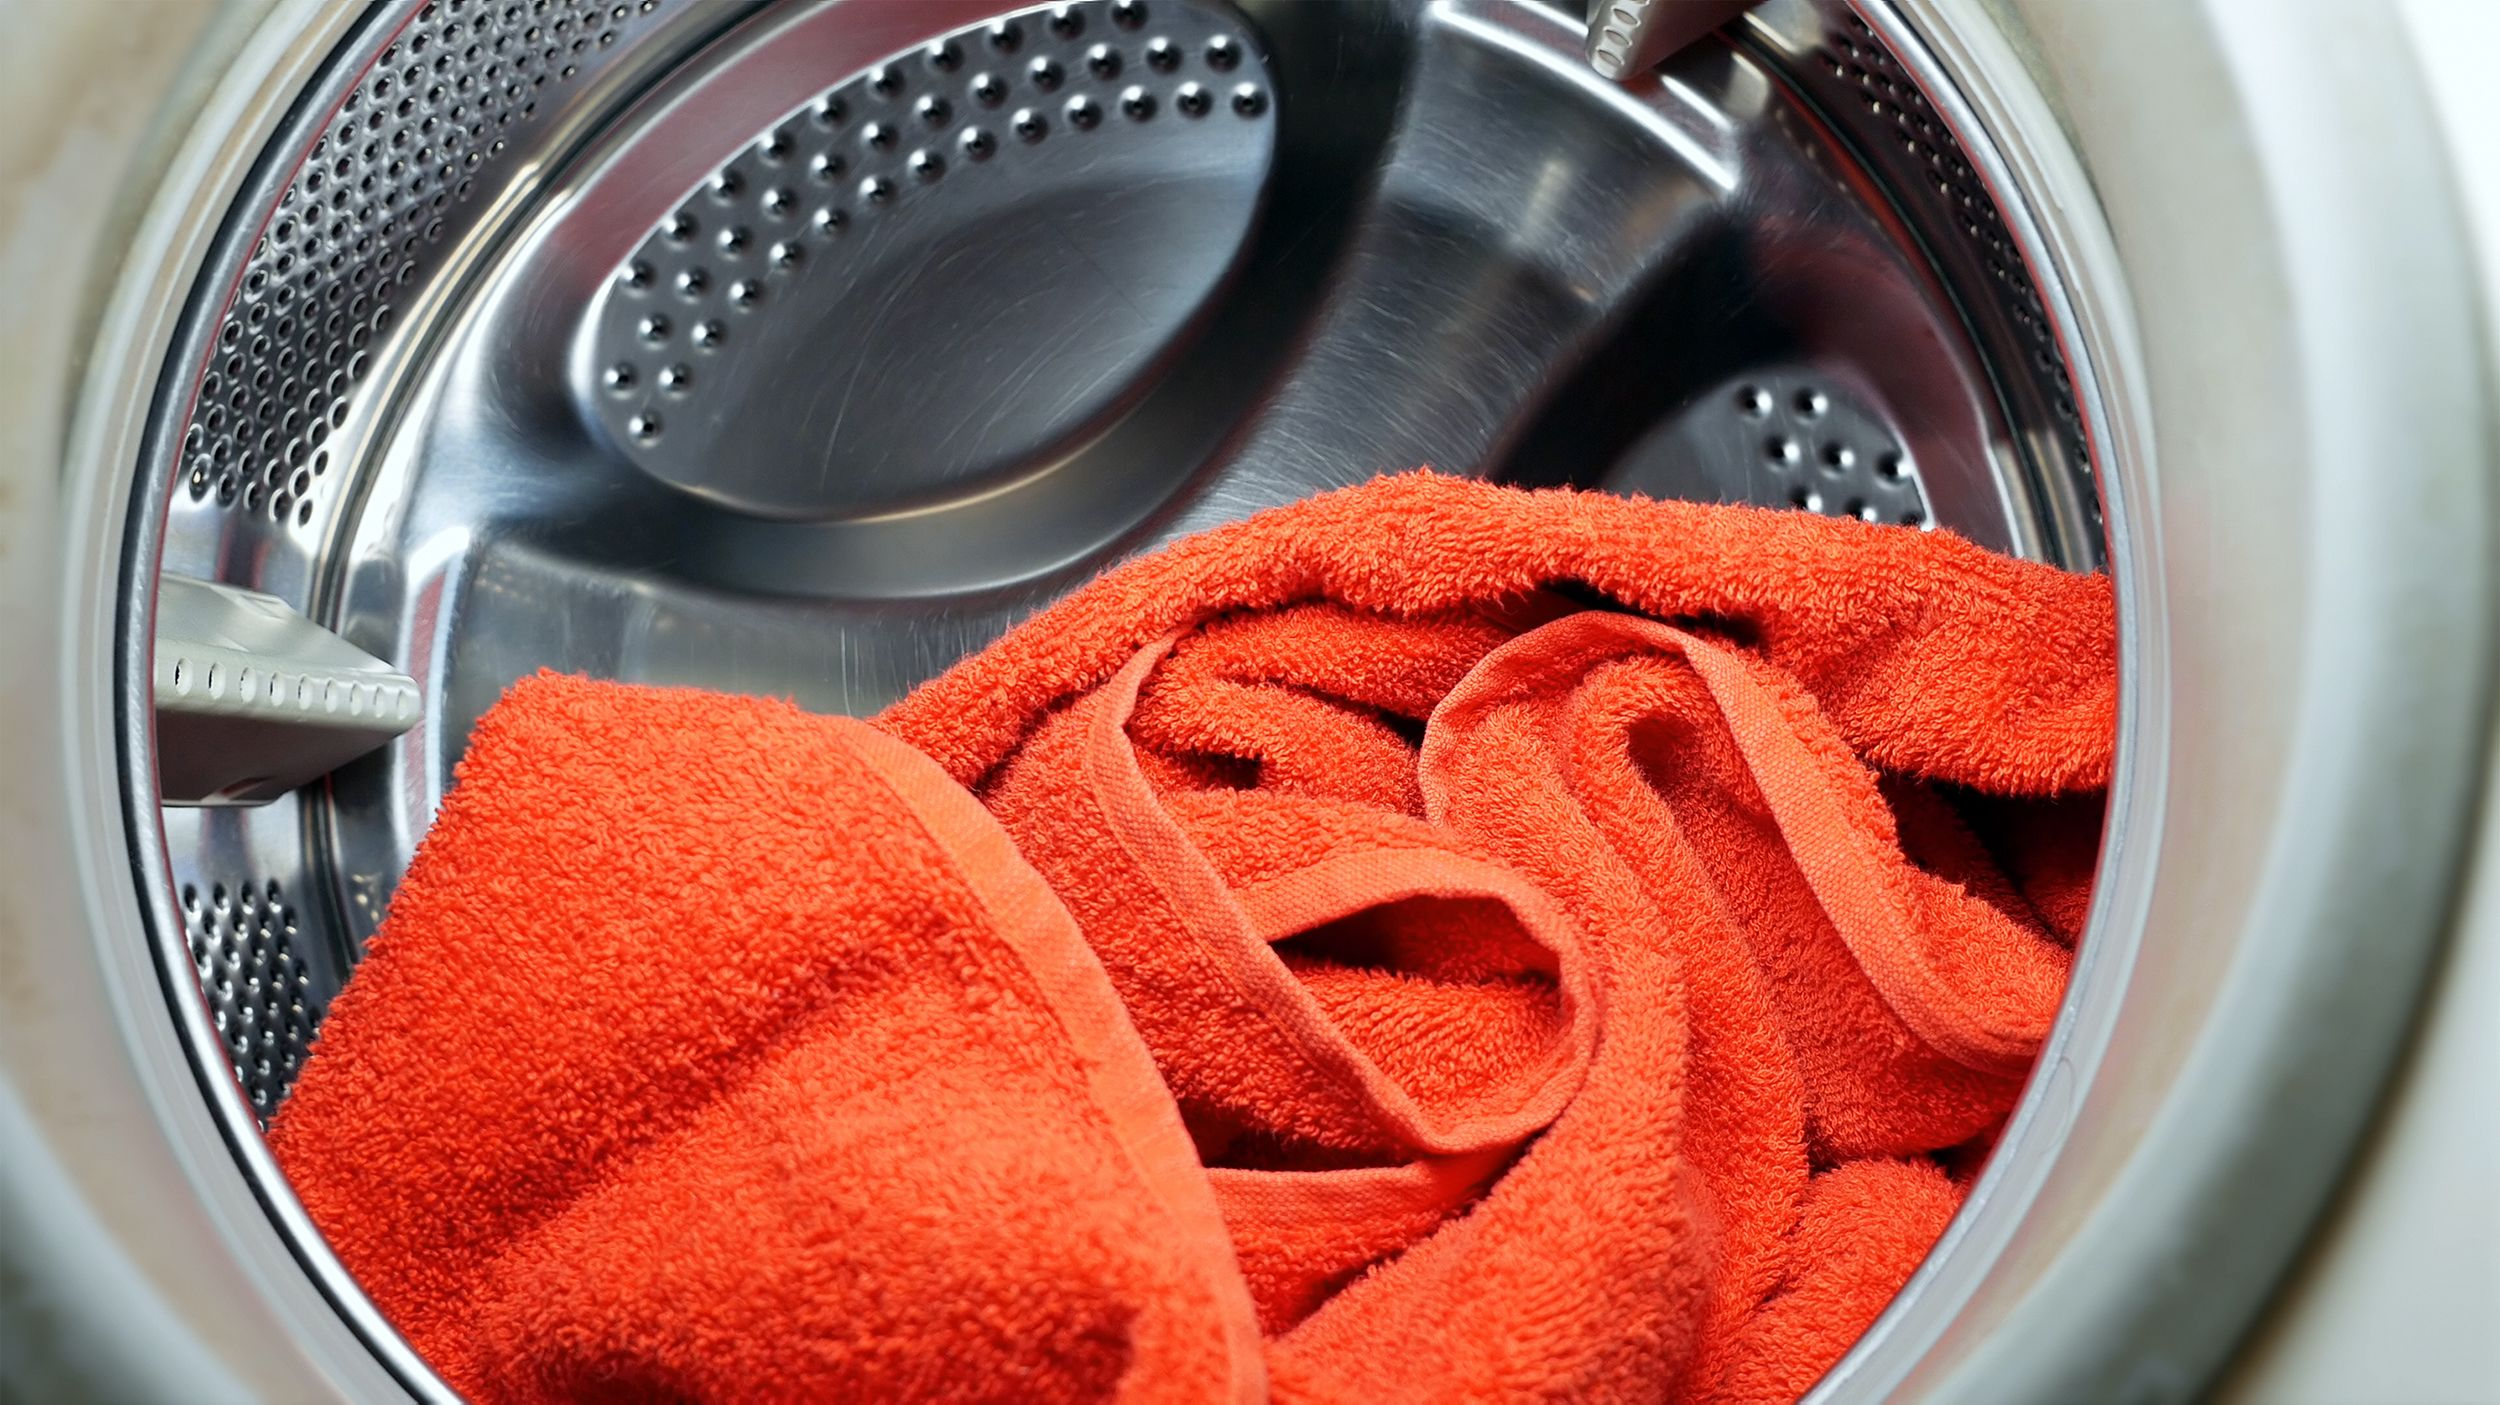 Clothes Smelling Less Than Fresh? Try Cleaning Your Washing Machine